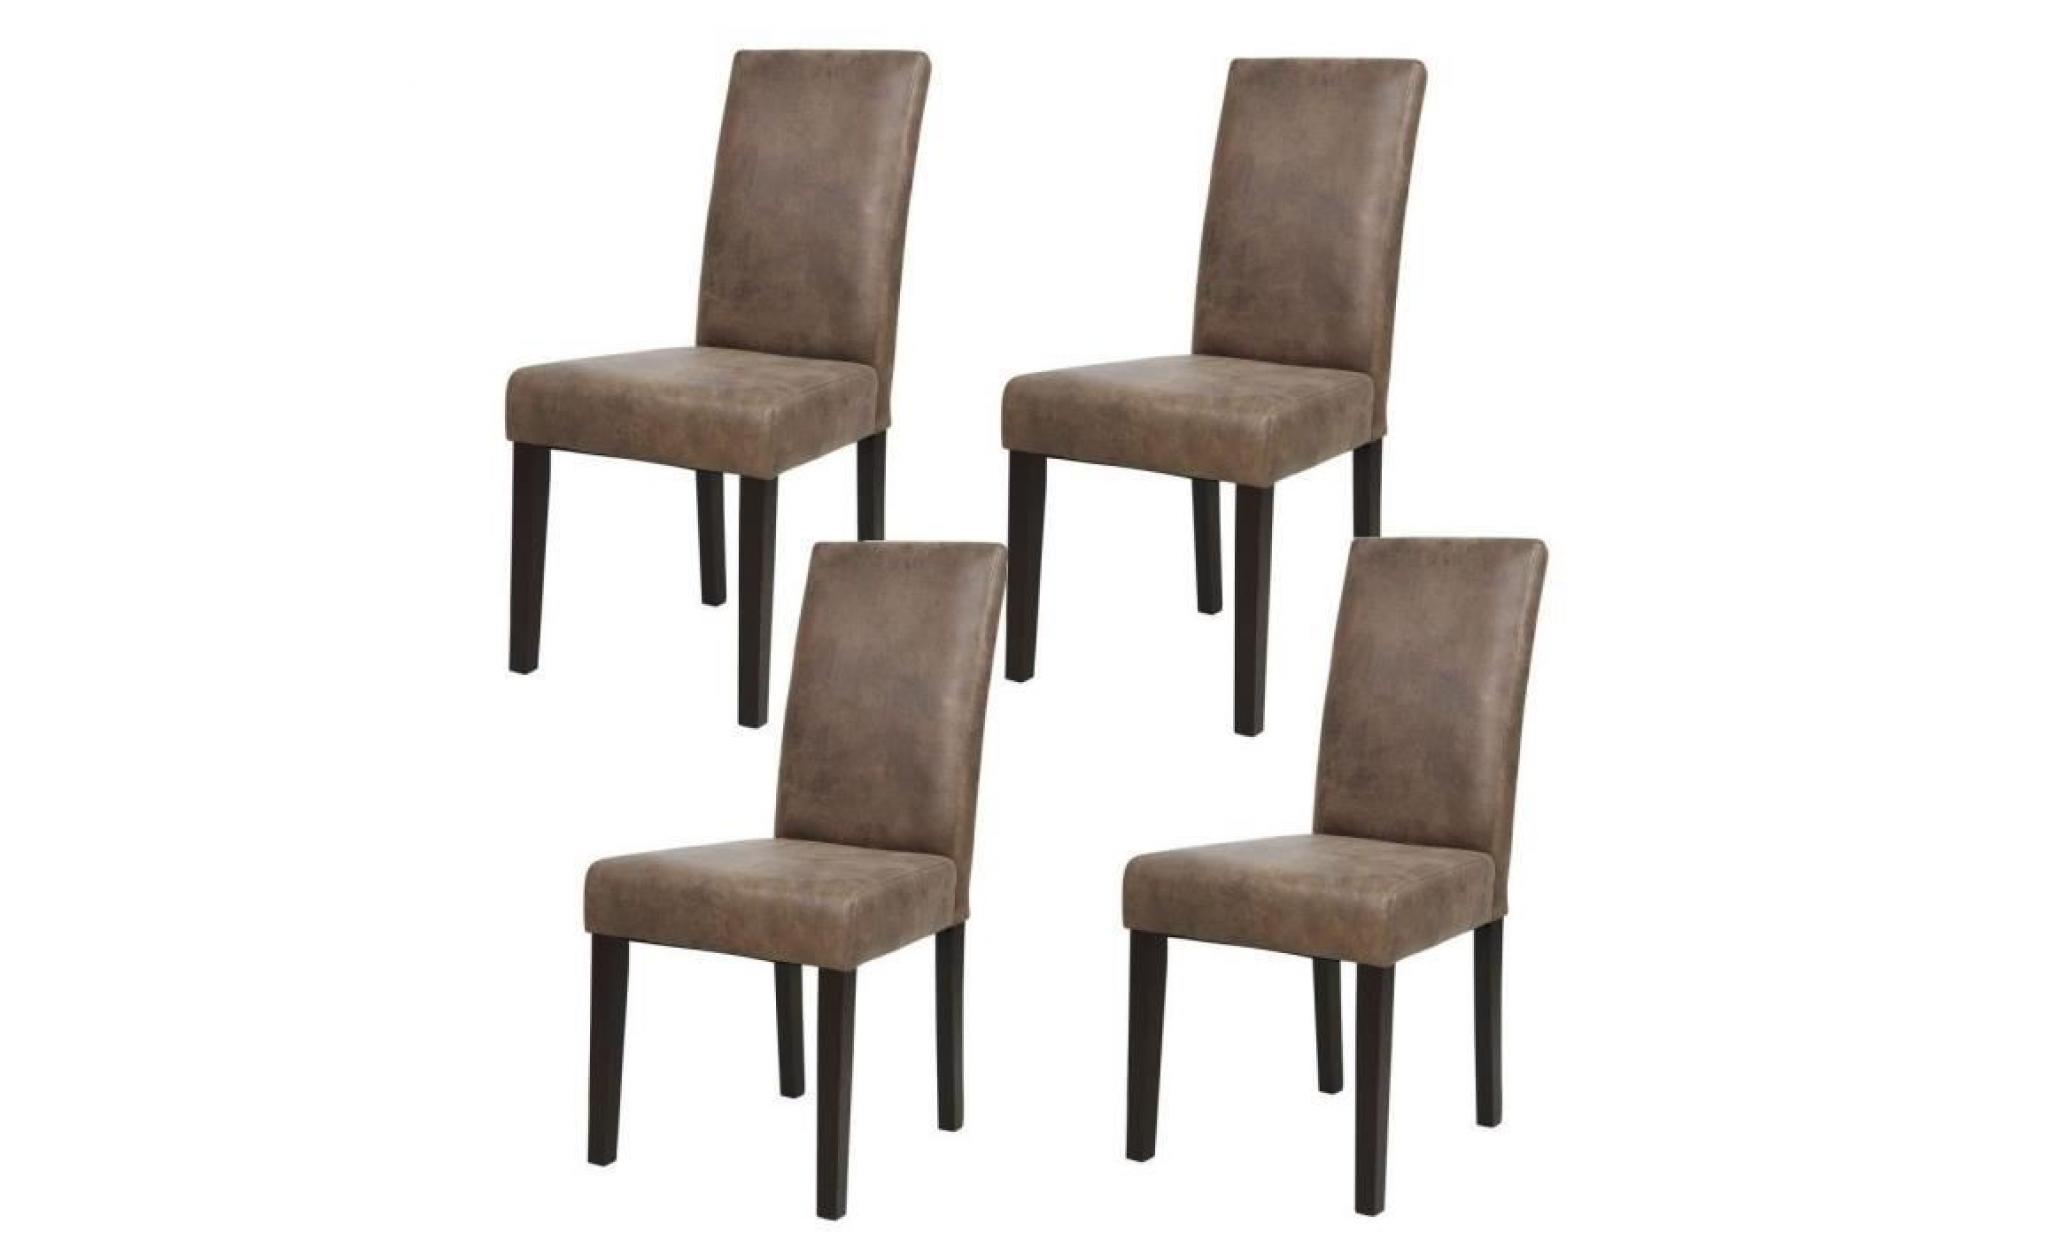 albus lot de 4 chaises de salle manger vintage marron. Black Bedroom Furniture Sets. Home Design Ideas